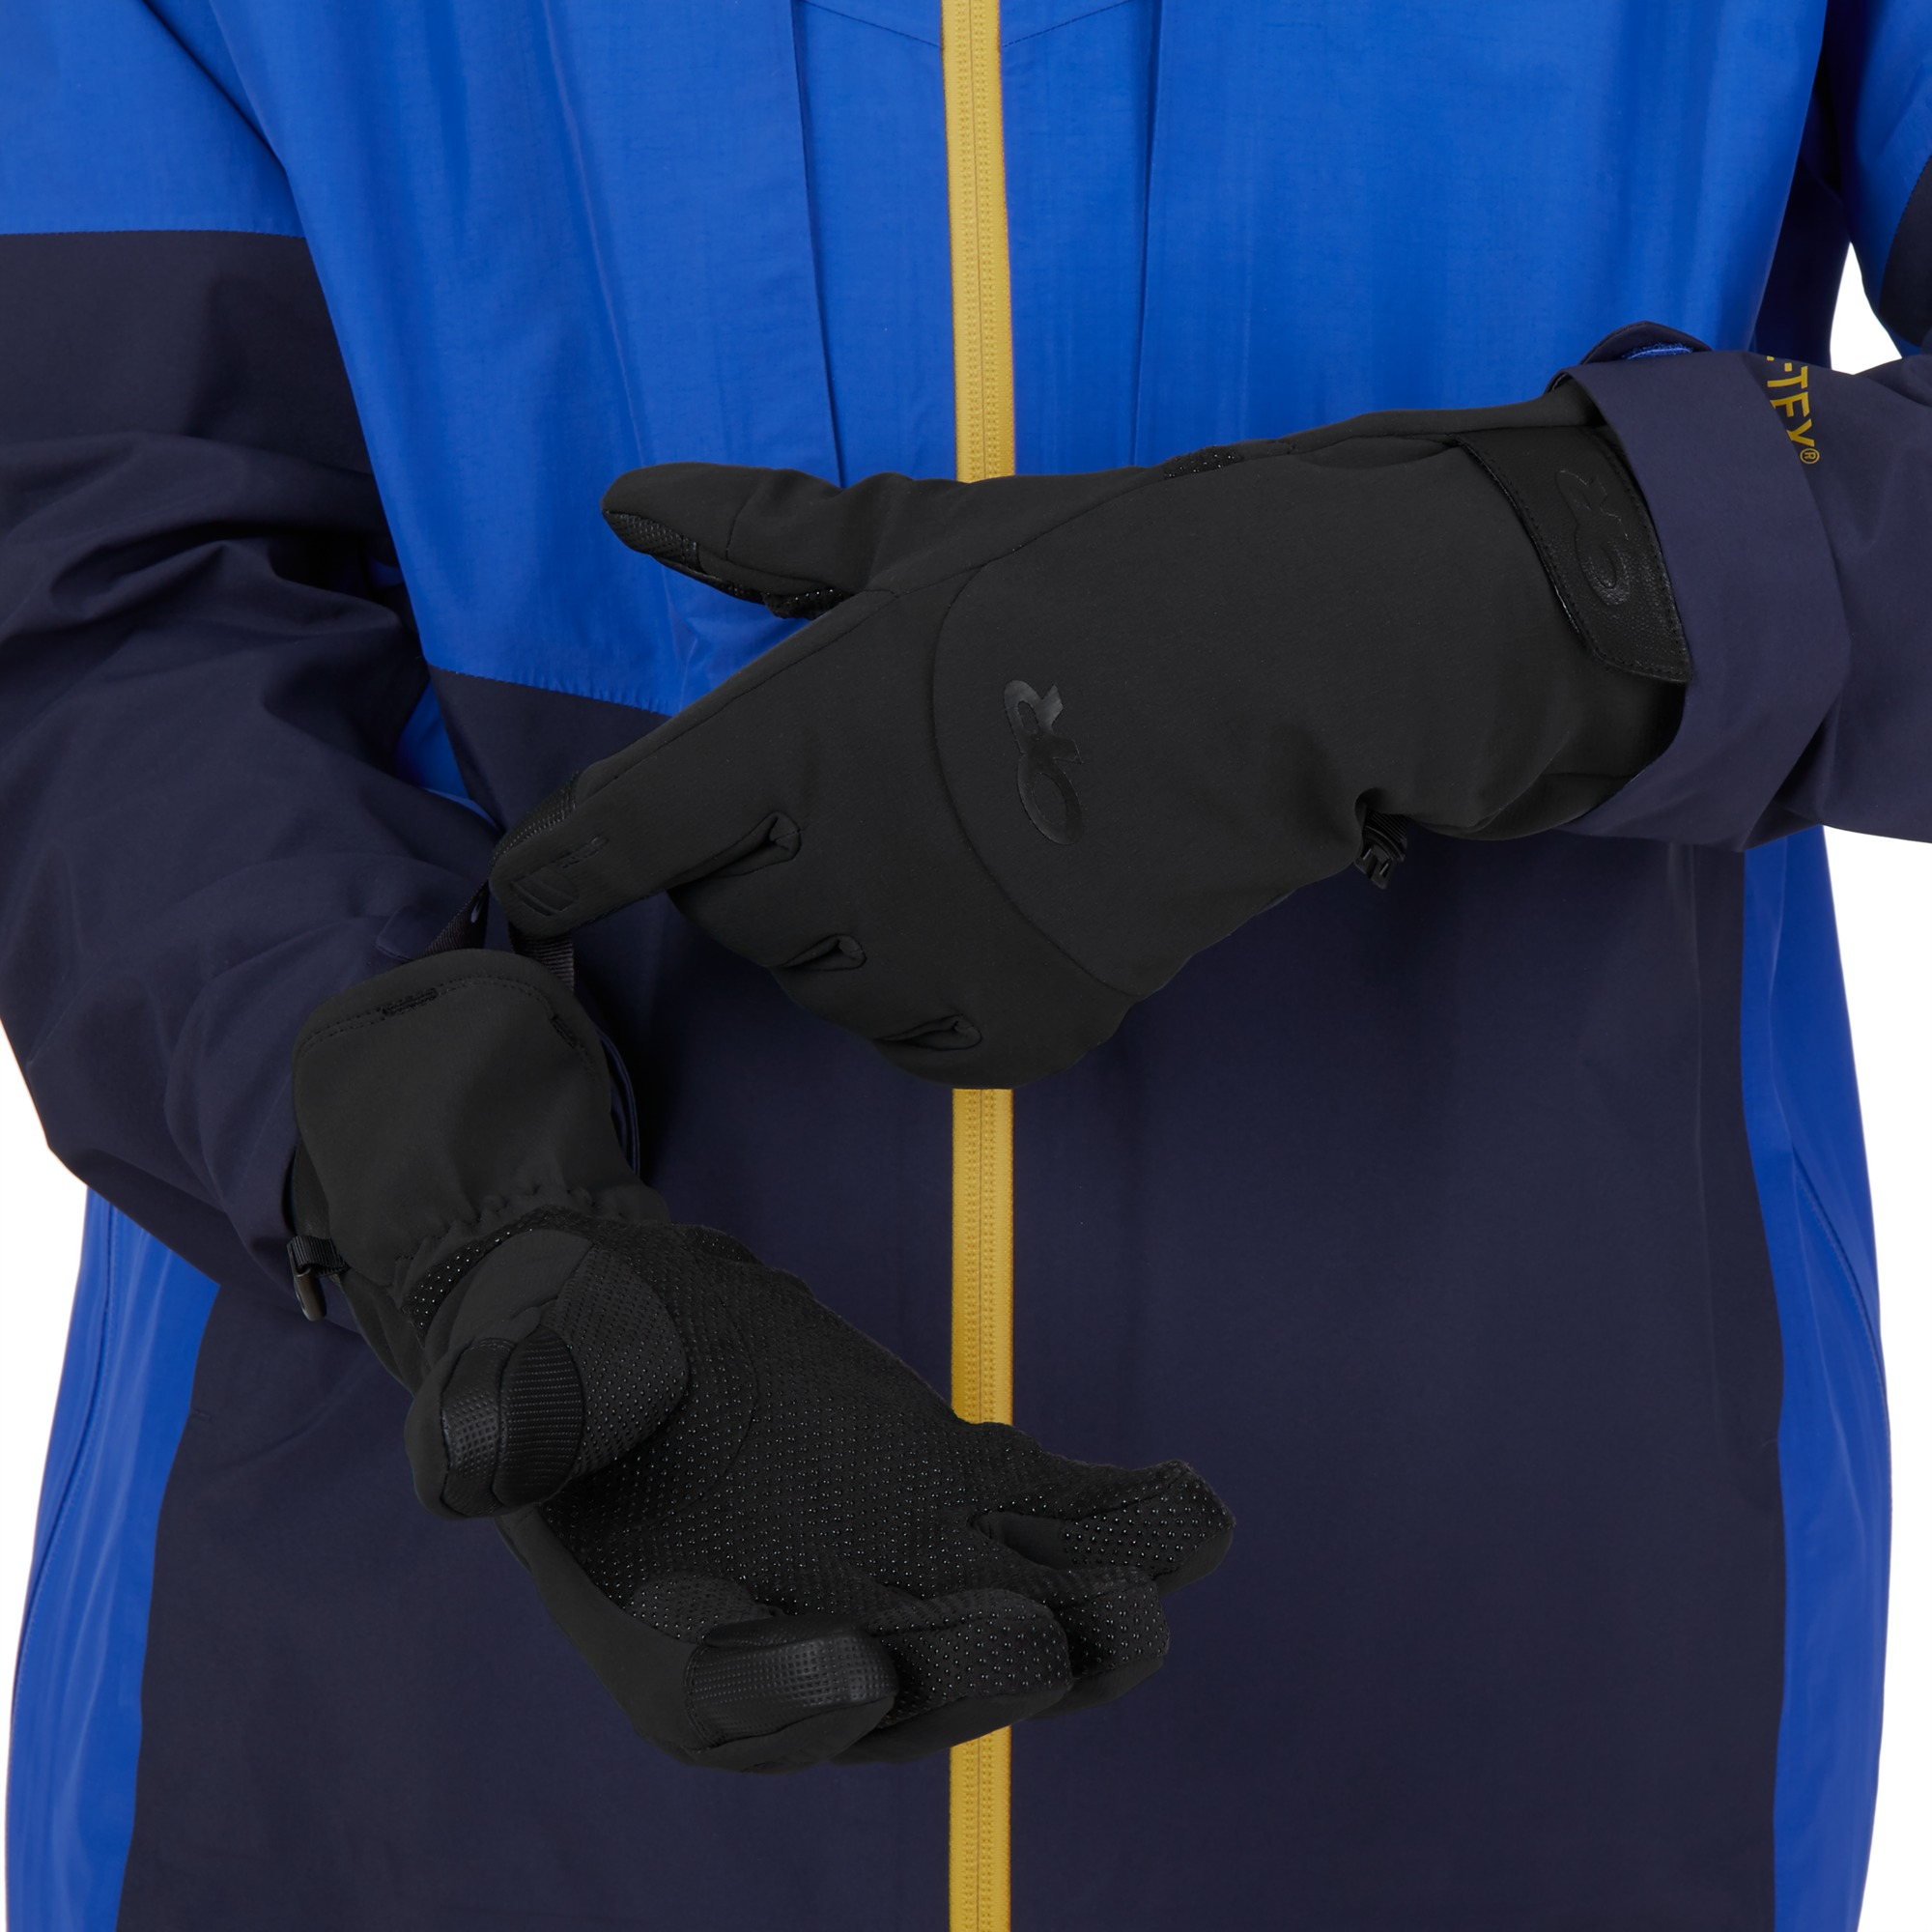 Inception Aerogel Gloves - saddle/black   Outdoor Research